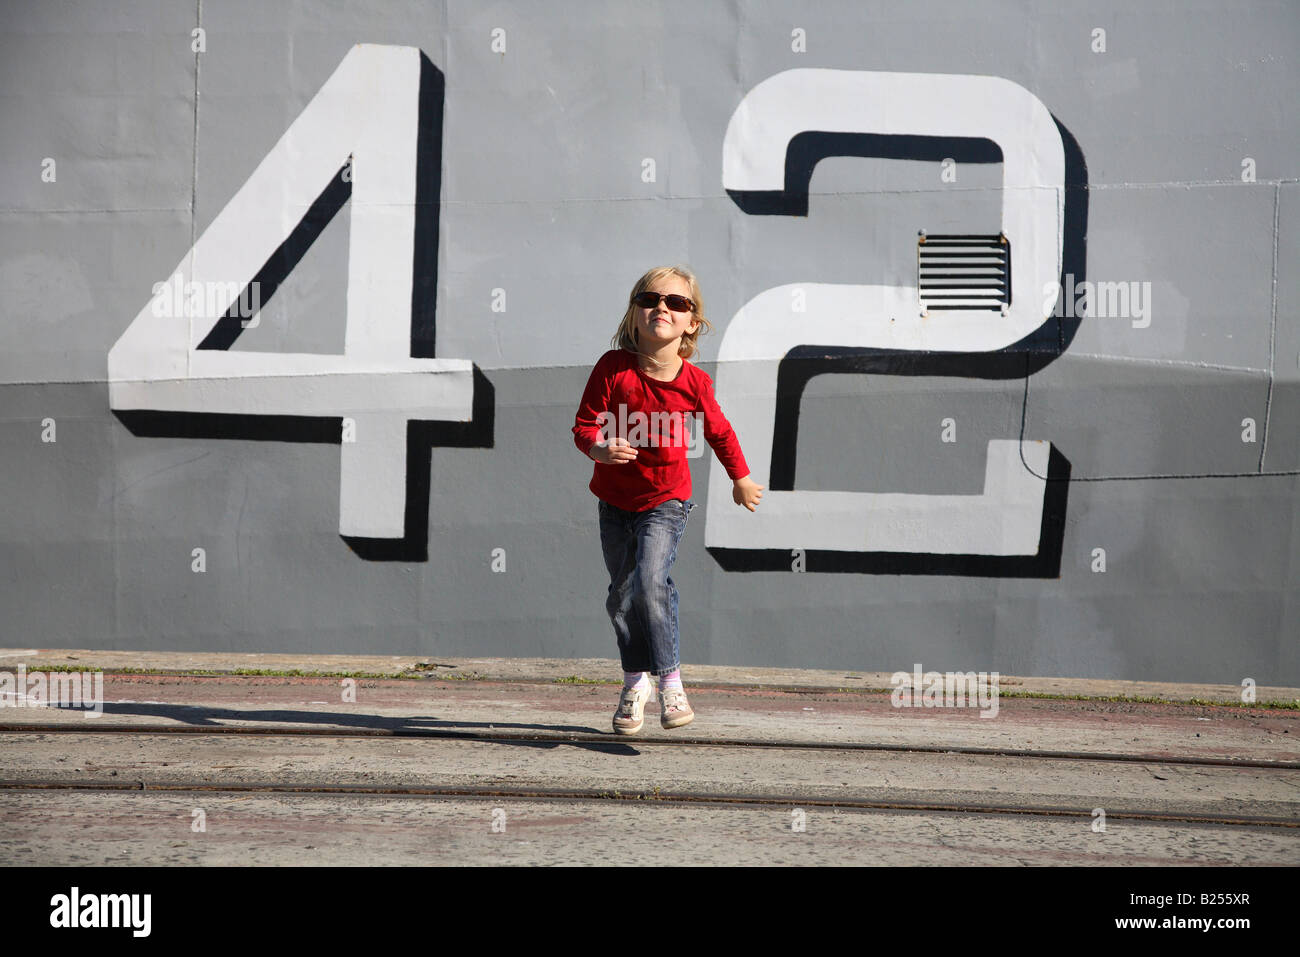 Young happy girl running at camera with big naval numbers '42' in background - Stock Image